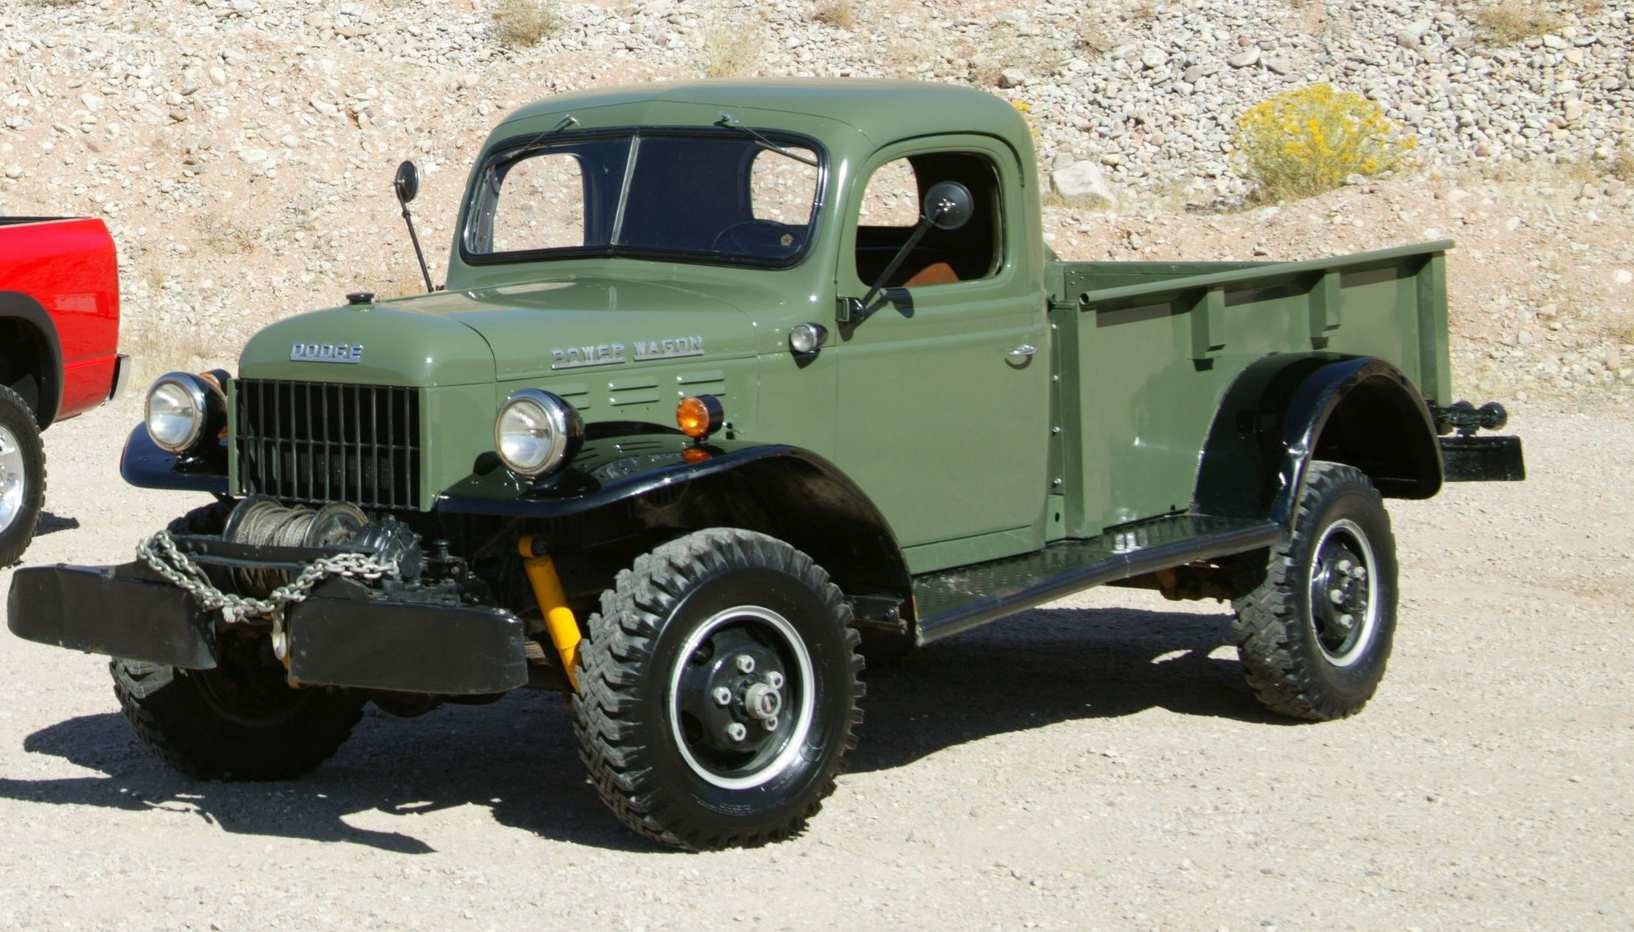 1946 dodge power wagon review gallery top speed. Black Bedroom Furniture Sets. Home Design Ideas